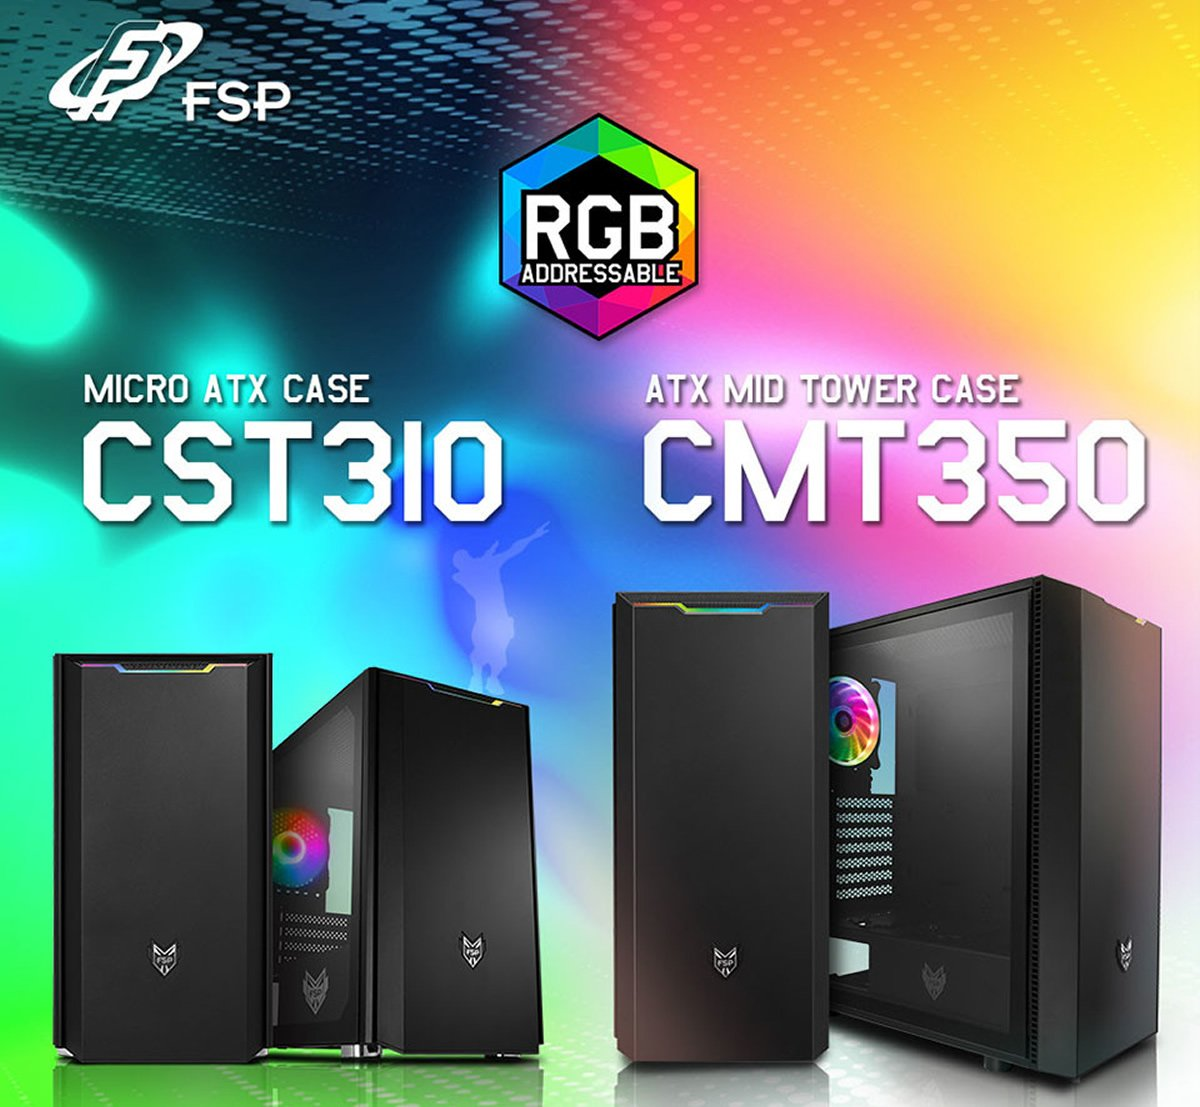 Meet The New FSP CMT350, CST310, and CST311 Cases With SPCC Steel Frame And Clear Side Panels To Showcase Your Rig